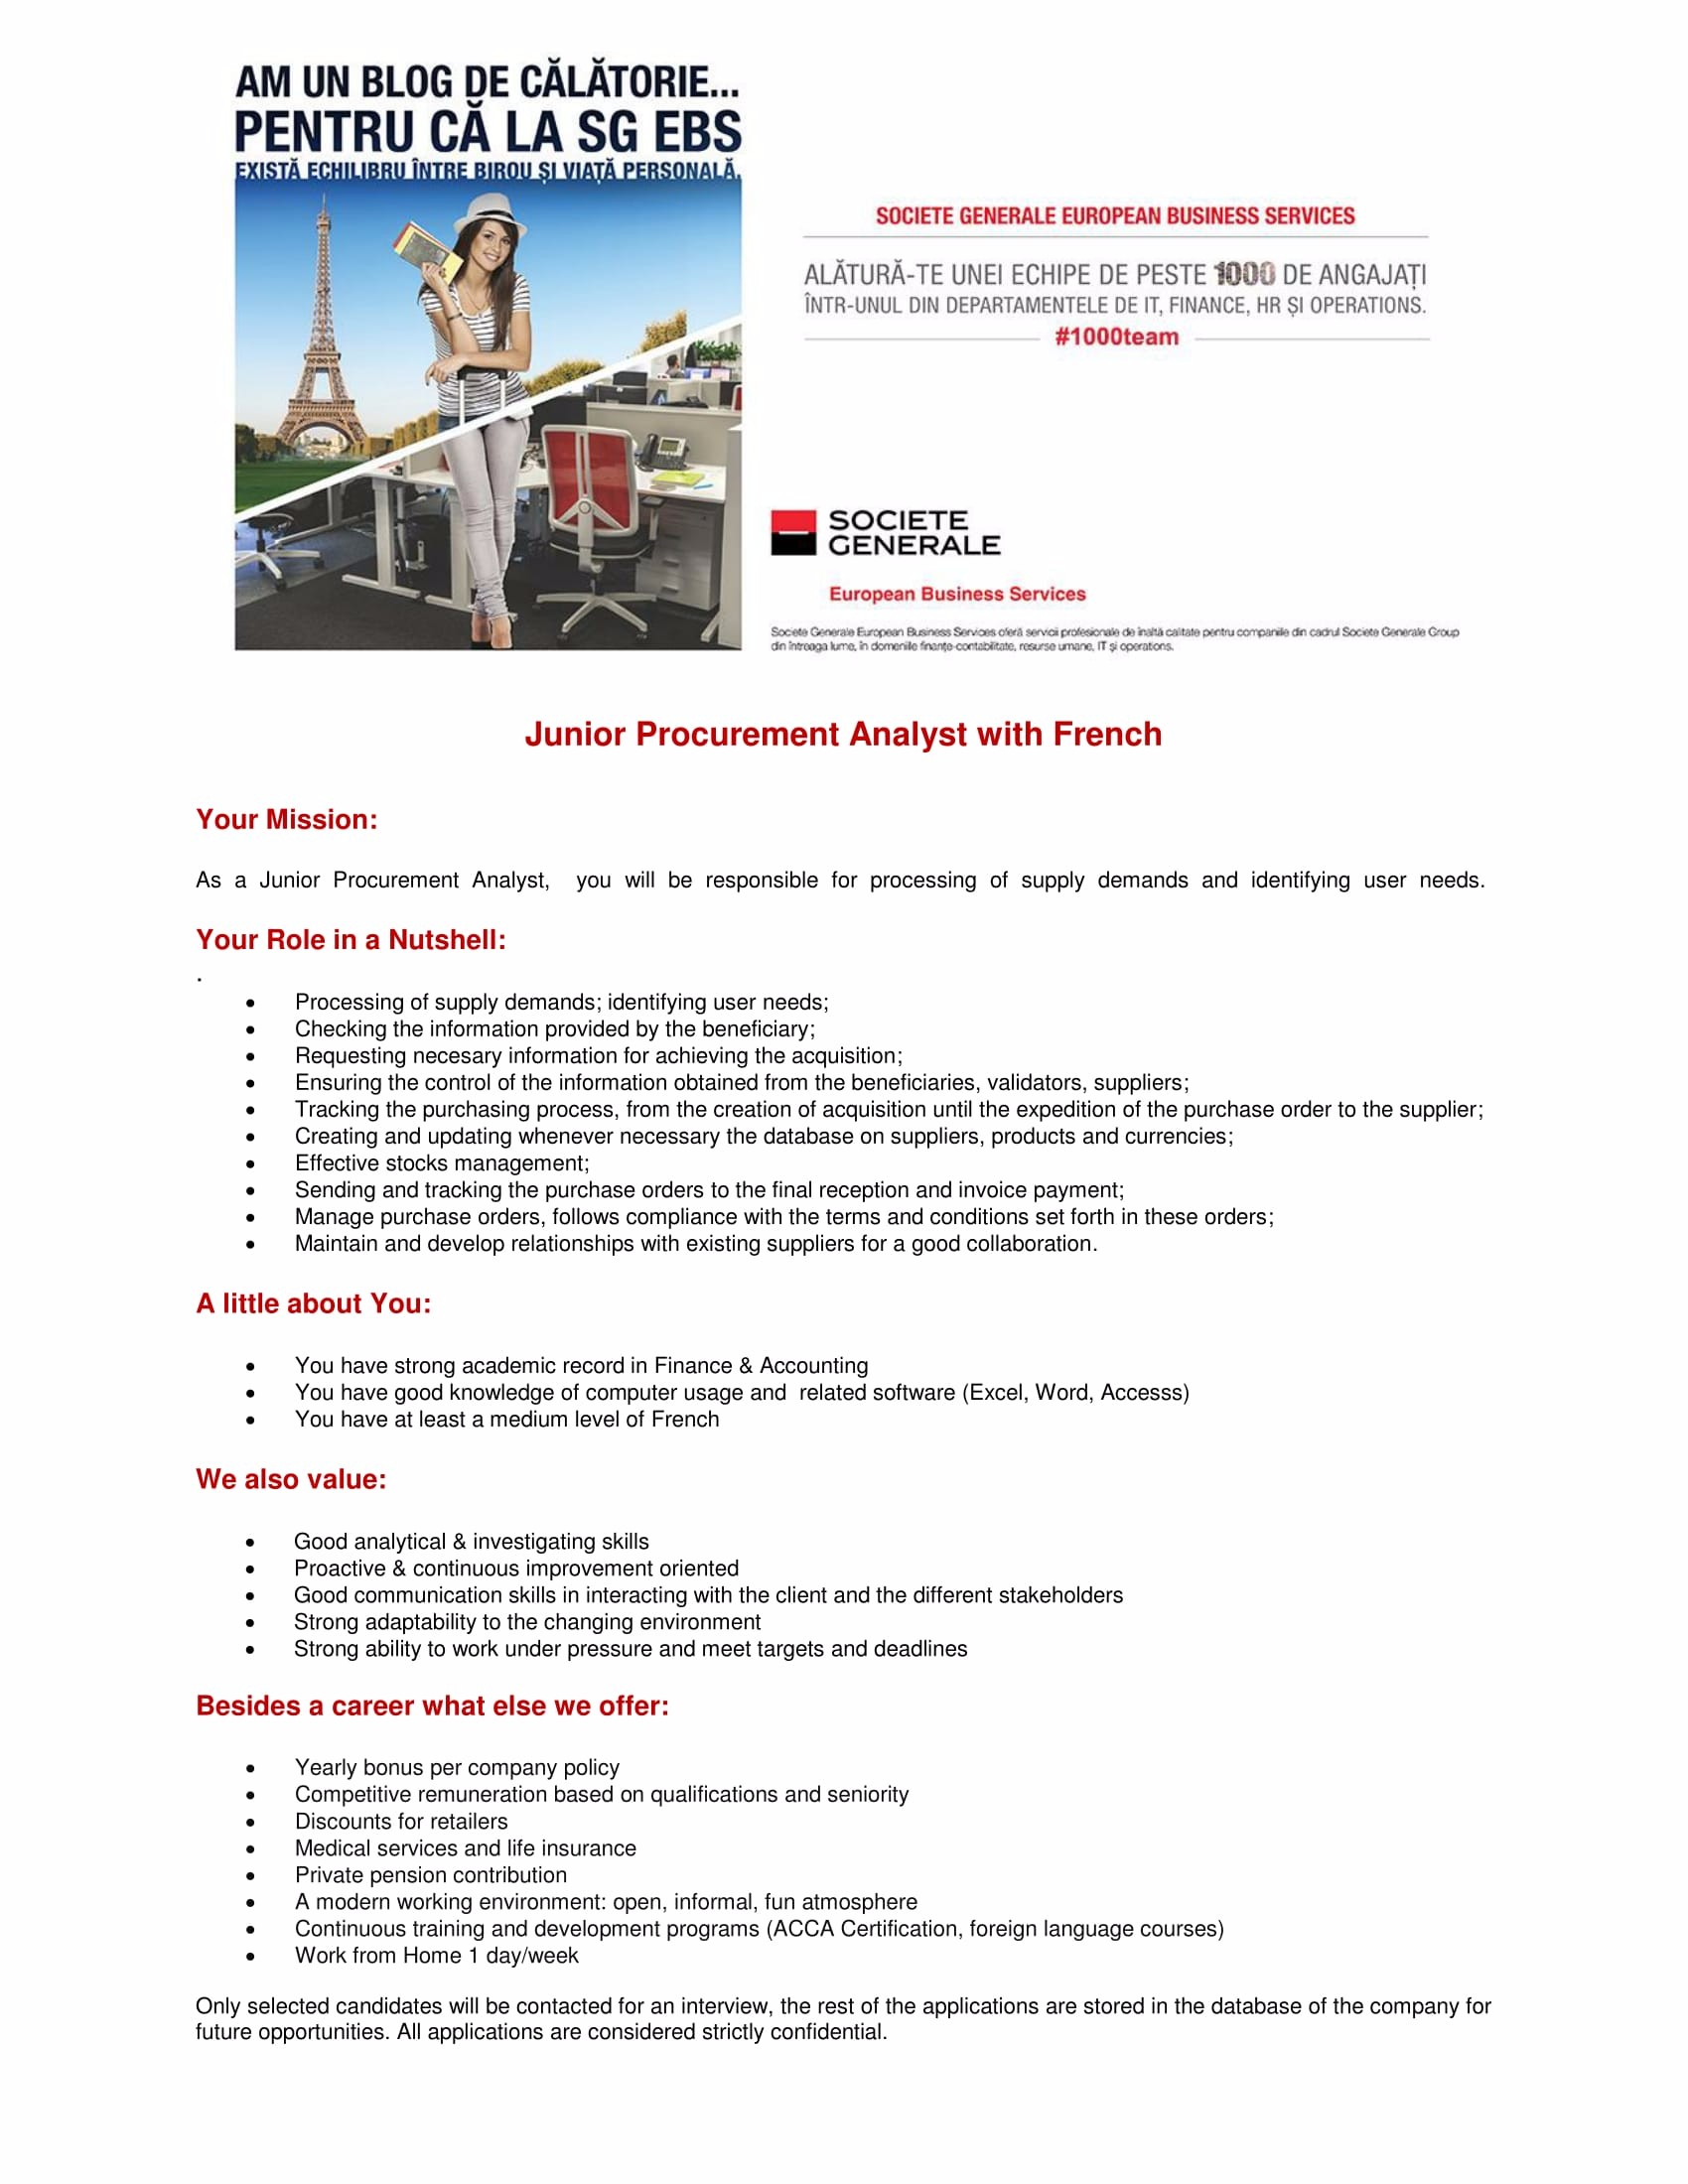 Junior Procurement Analyst With French-1